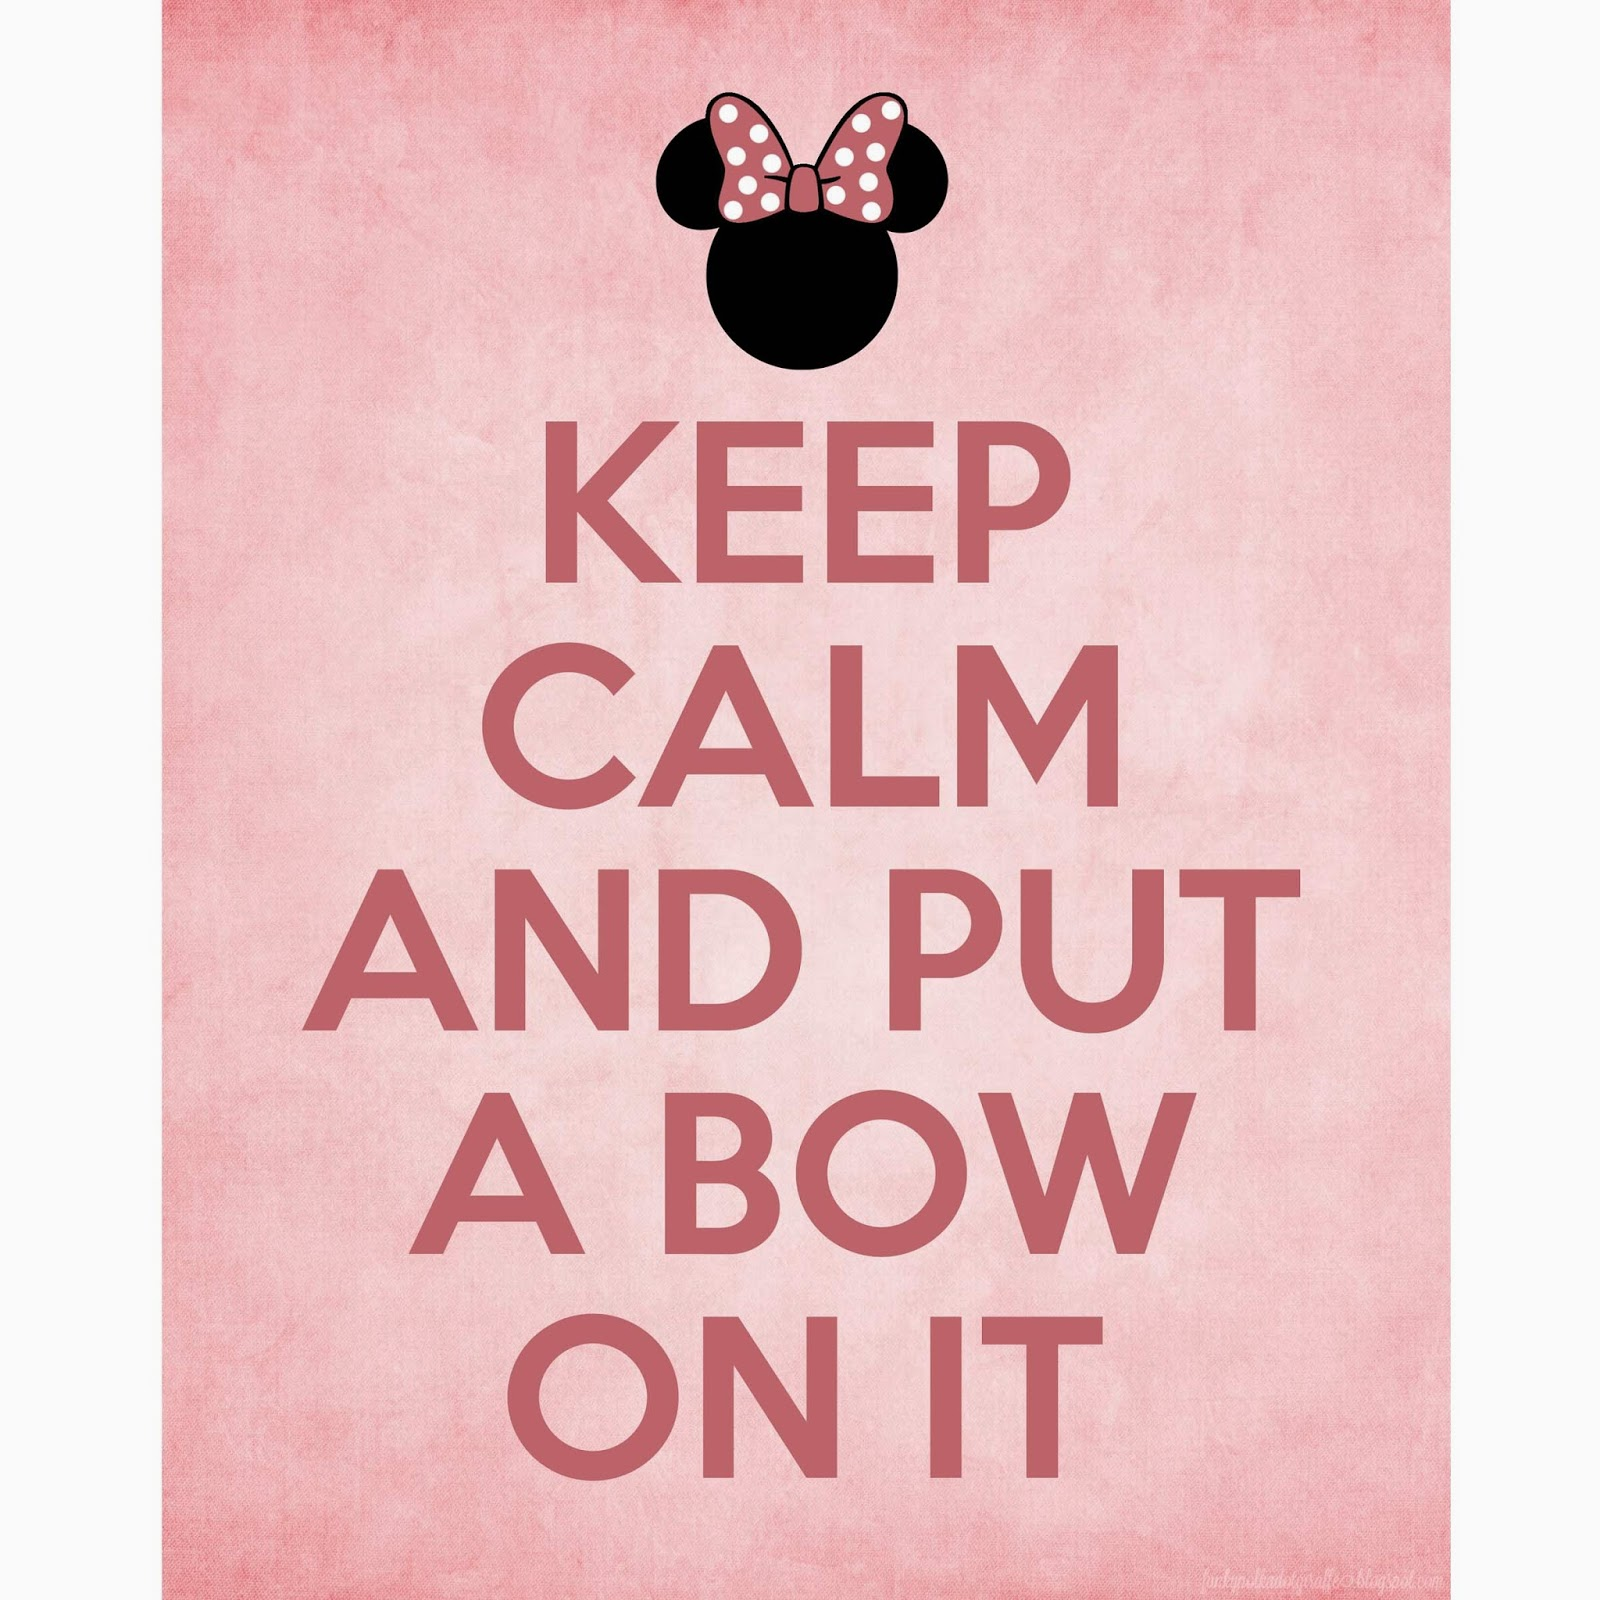 keep calm put a bow on it